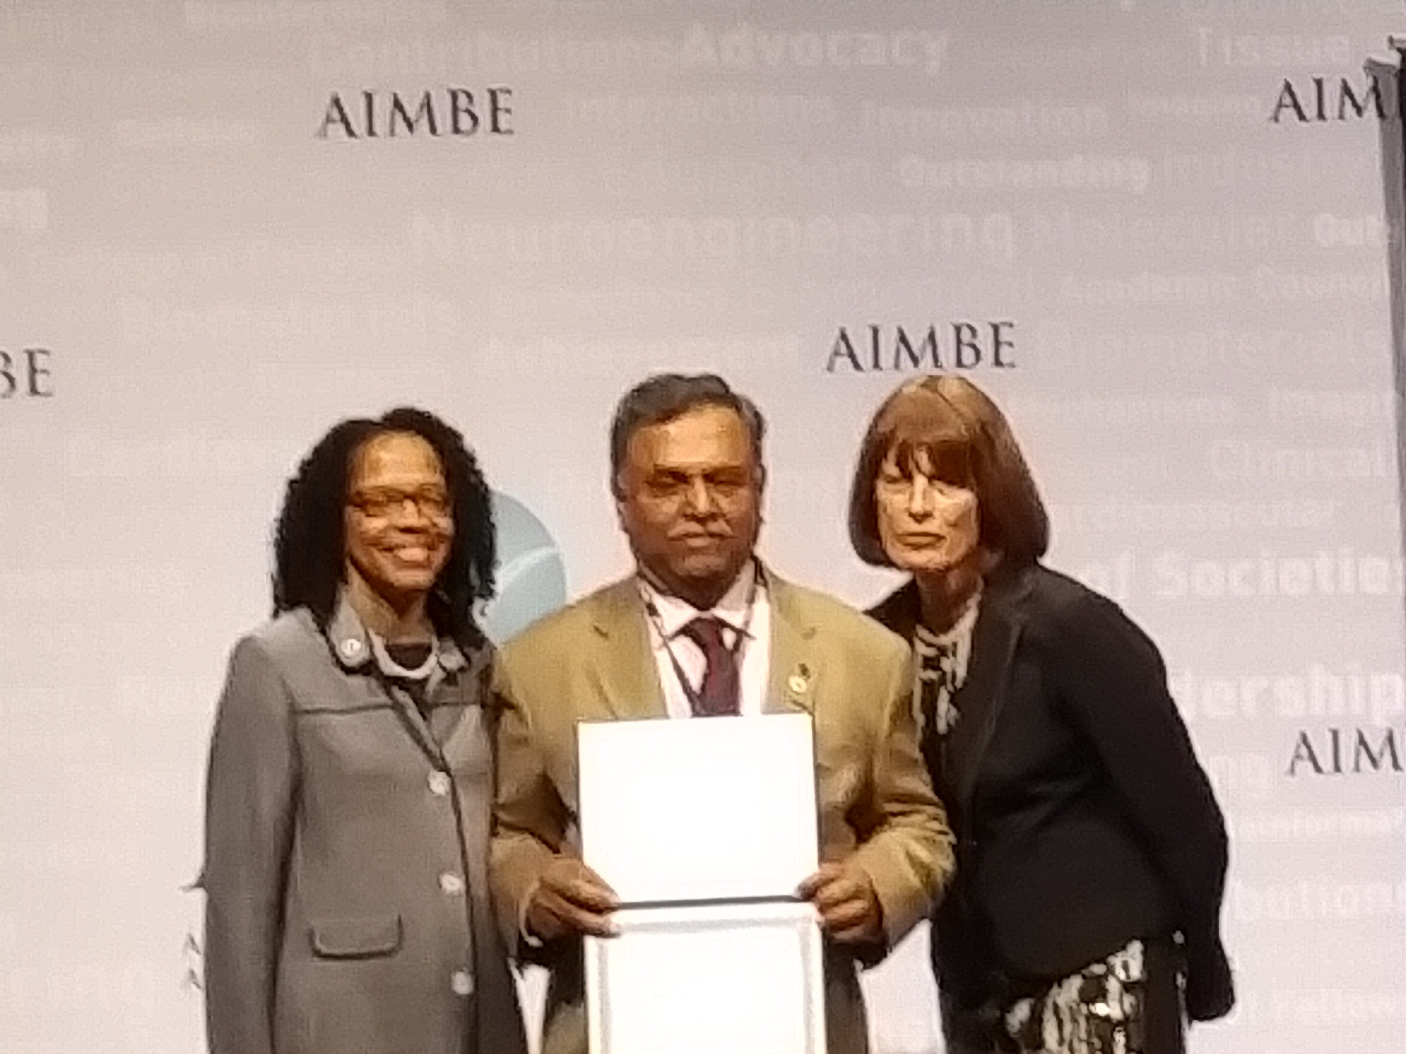 Dr. Iyengar inducted into AIMBE | School of Computing and Information Sciences